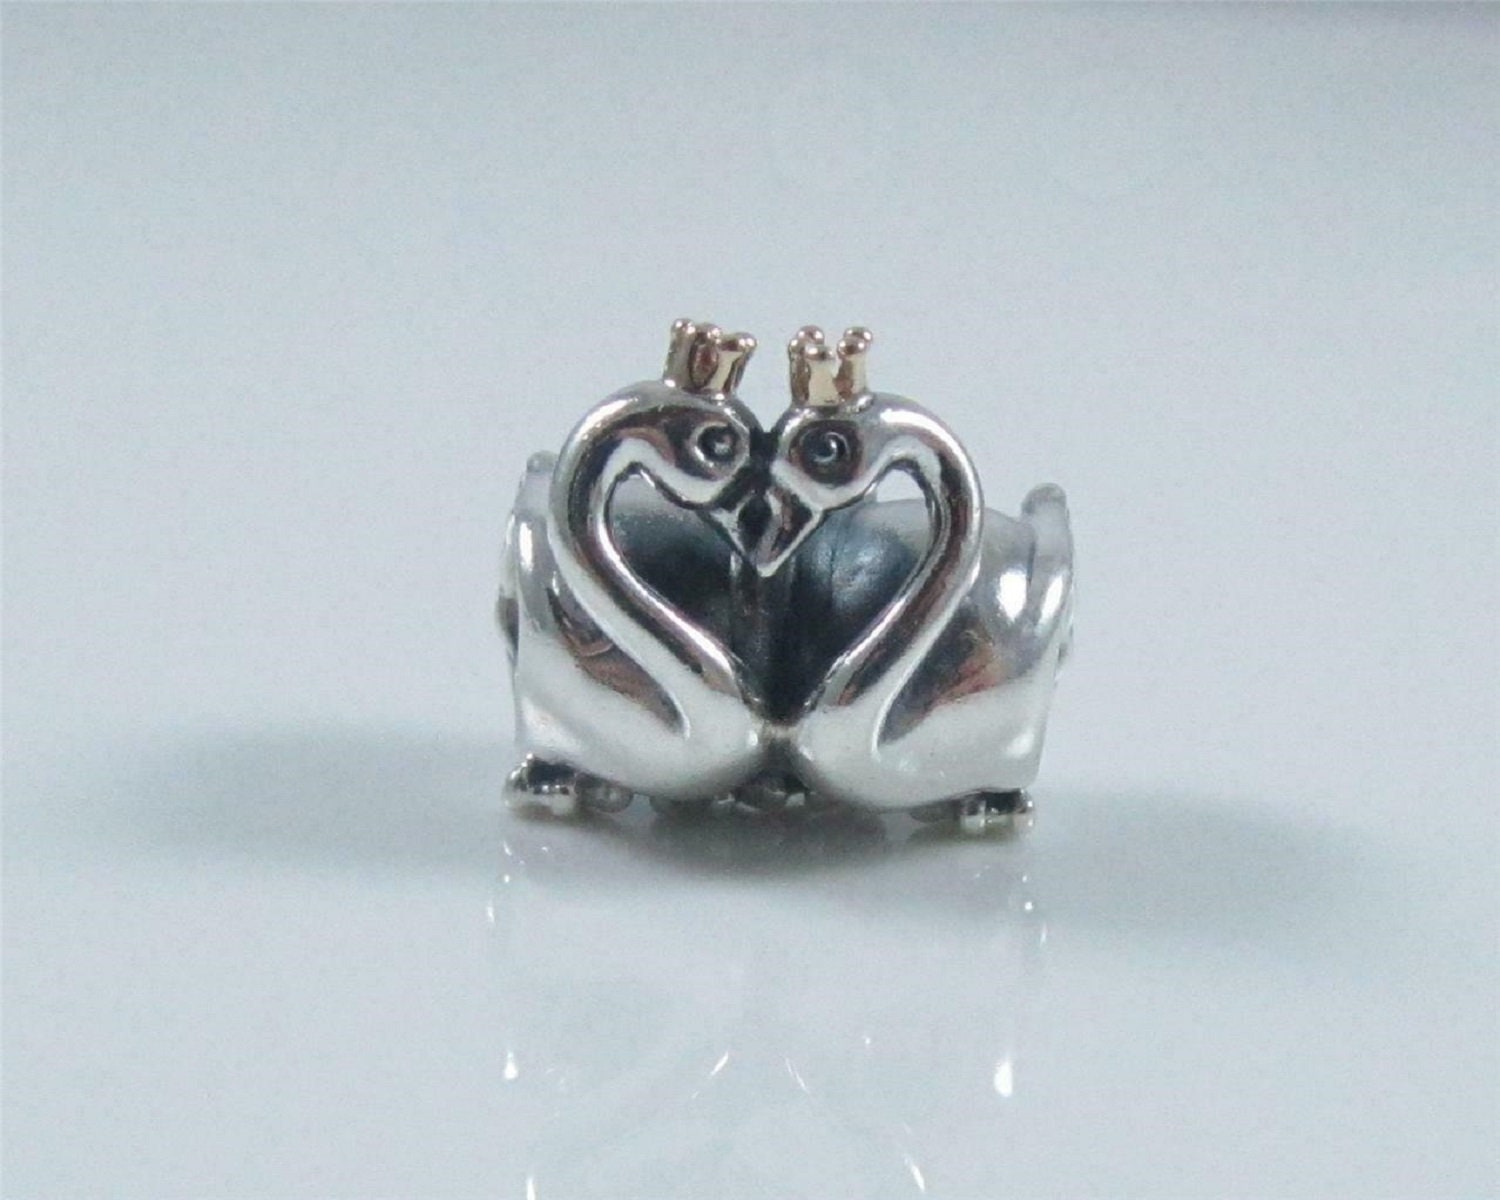 daceb8566 Pandora, Bracelet Charms, Dangles / Swans Embrace Charm Metalic Gold Crown  / New / s925 Sterling Silver / Fully Stamped